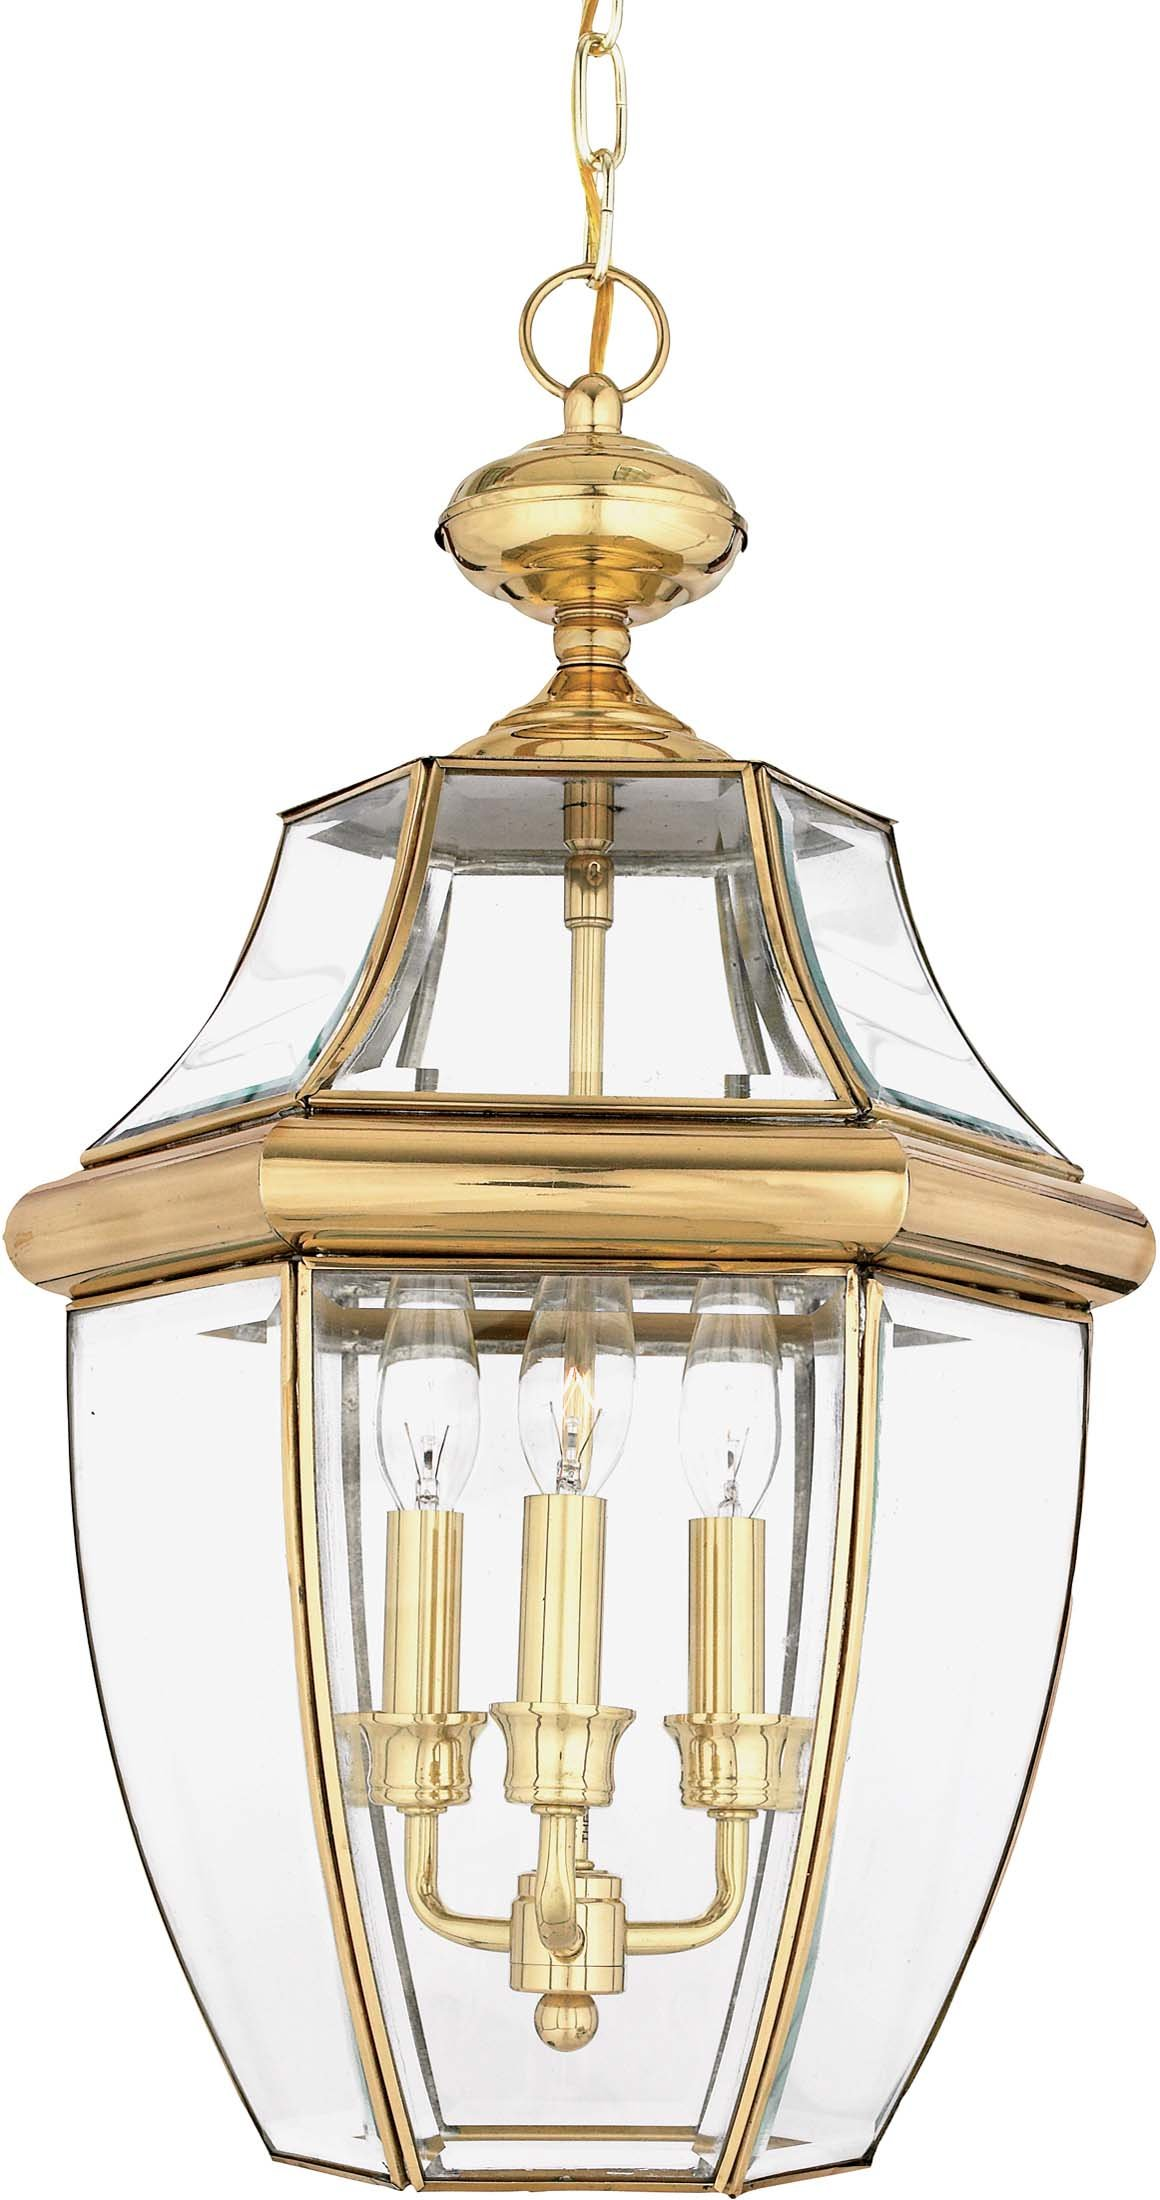 Quoizel NY1179B, Newbury, 3-Light Outdoor Lantern, Brass by Quoizel